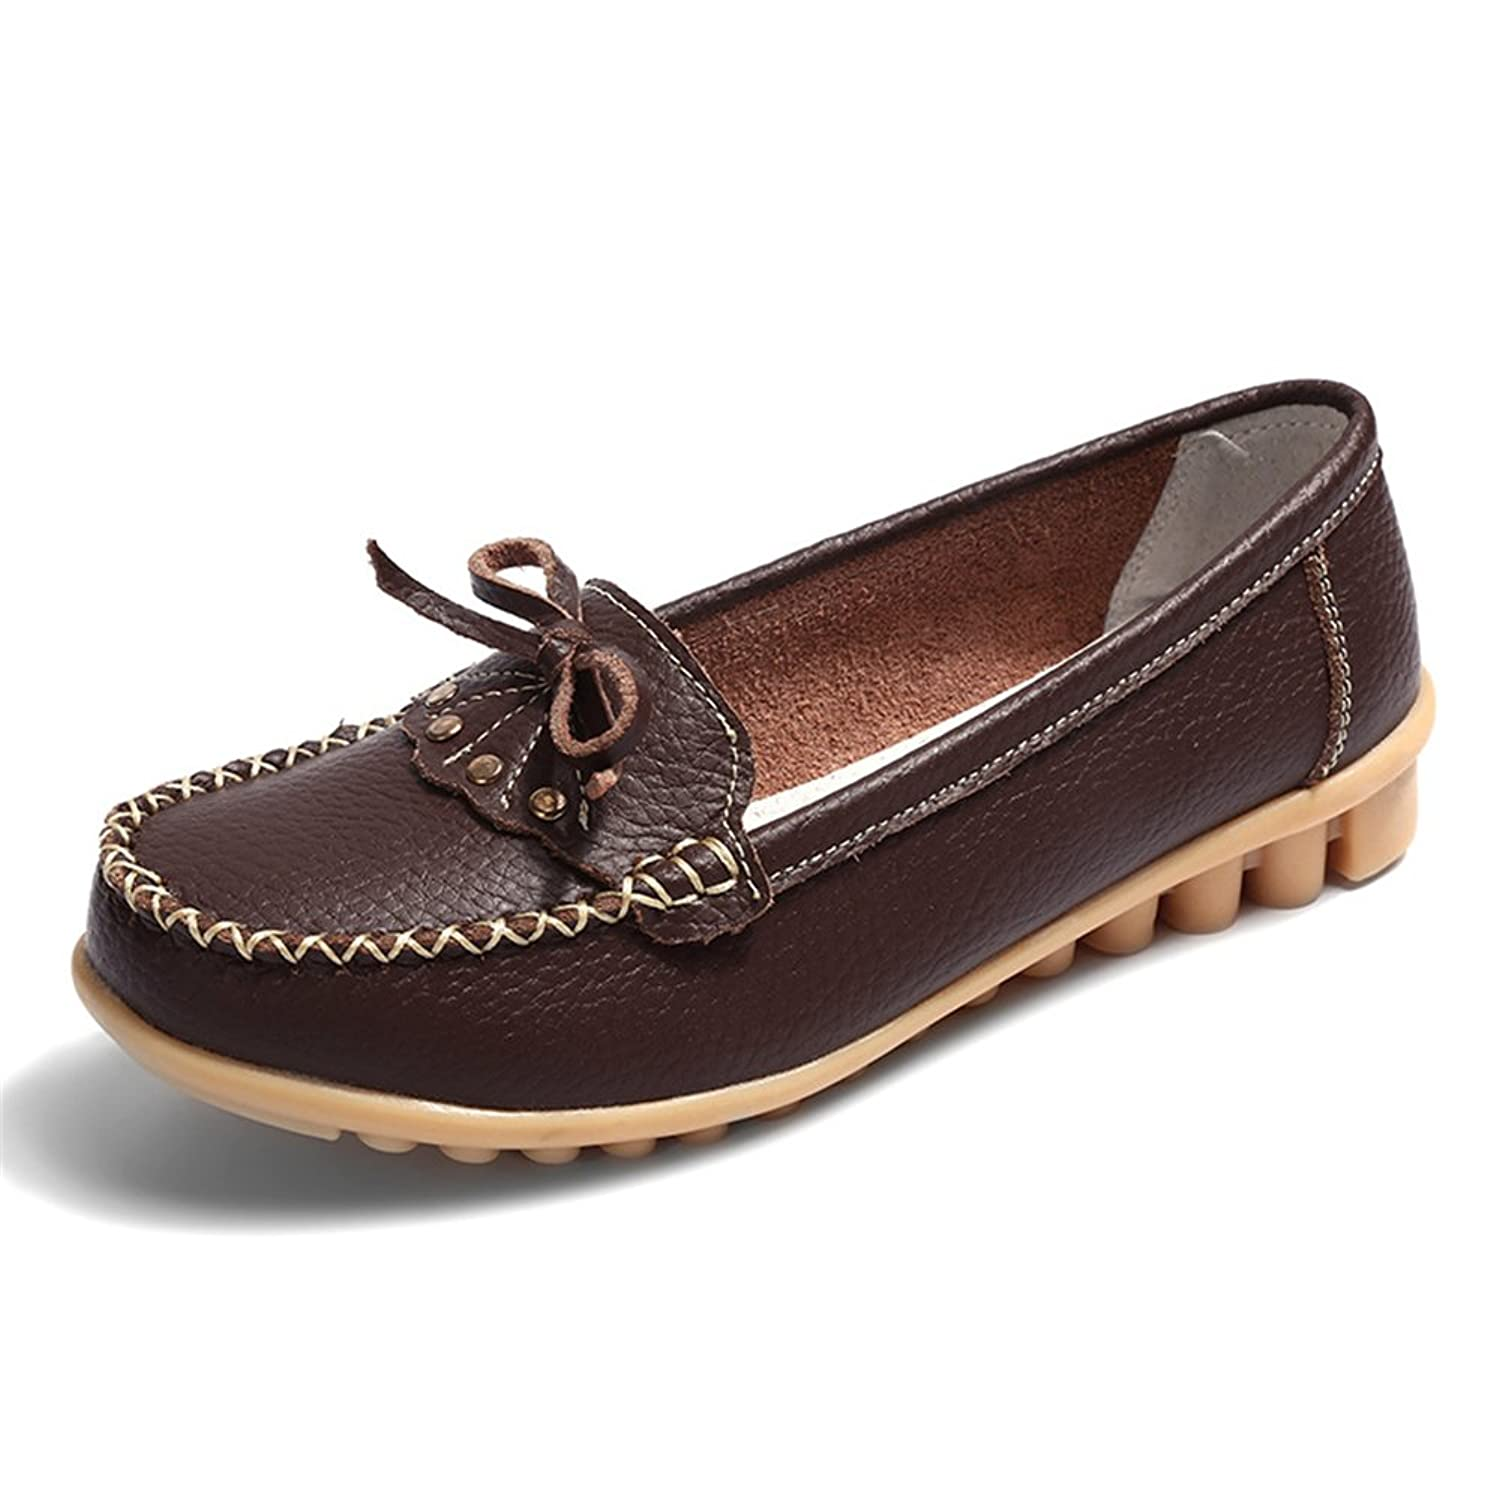 a965b8d2fba xiaoyang Classic Women s Leather Loafers Breathable Shoes Wild Driving Slip  on Casual Flats Oxfords